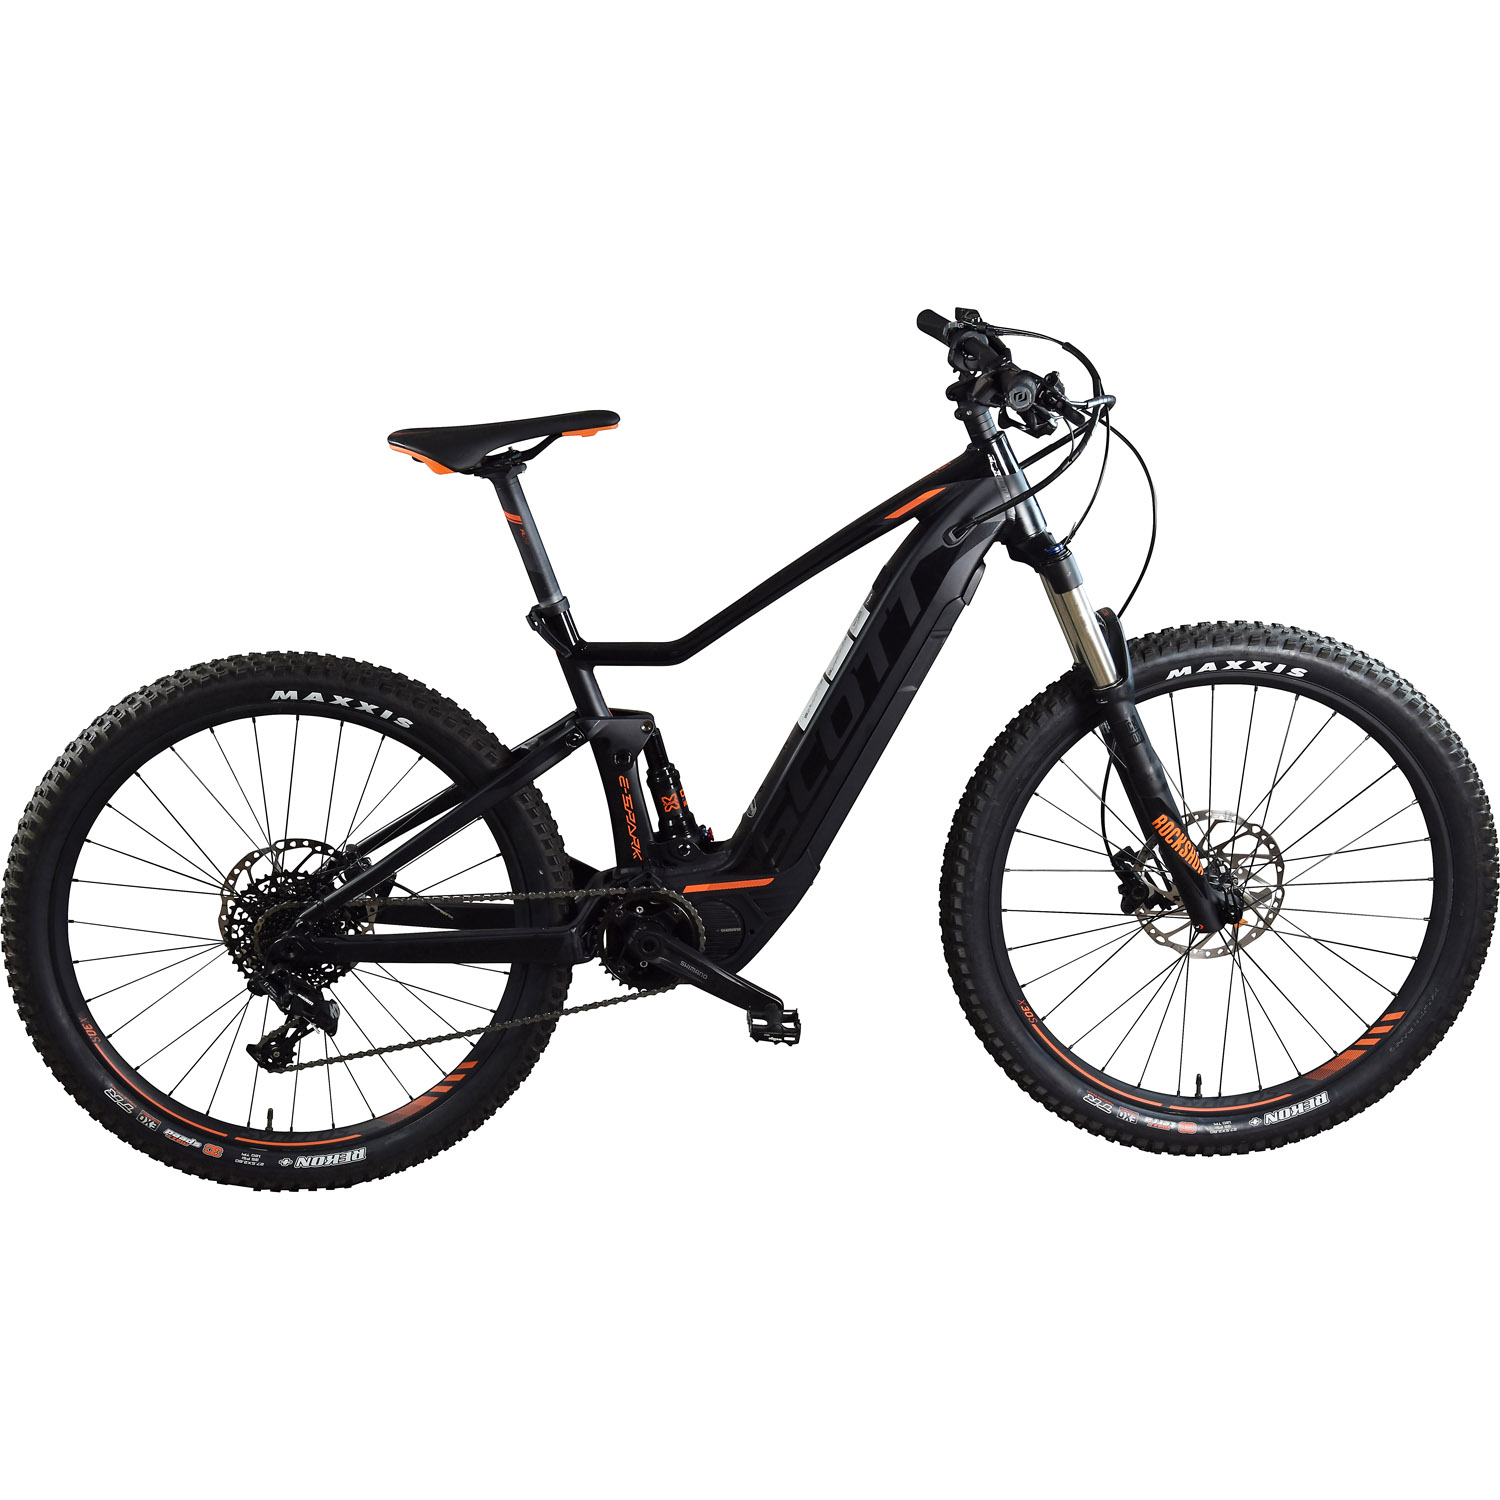 scott e spark 730 e mountainbike 27 5 zoll online shop. Black Bedroom Furniture Sets. Home Design Ideas